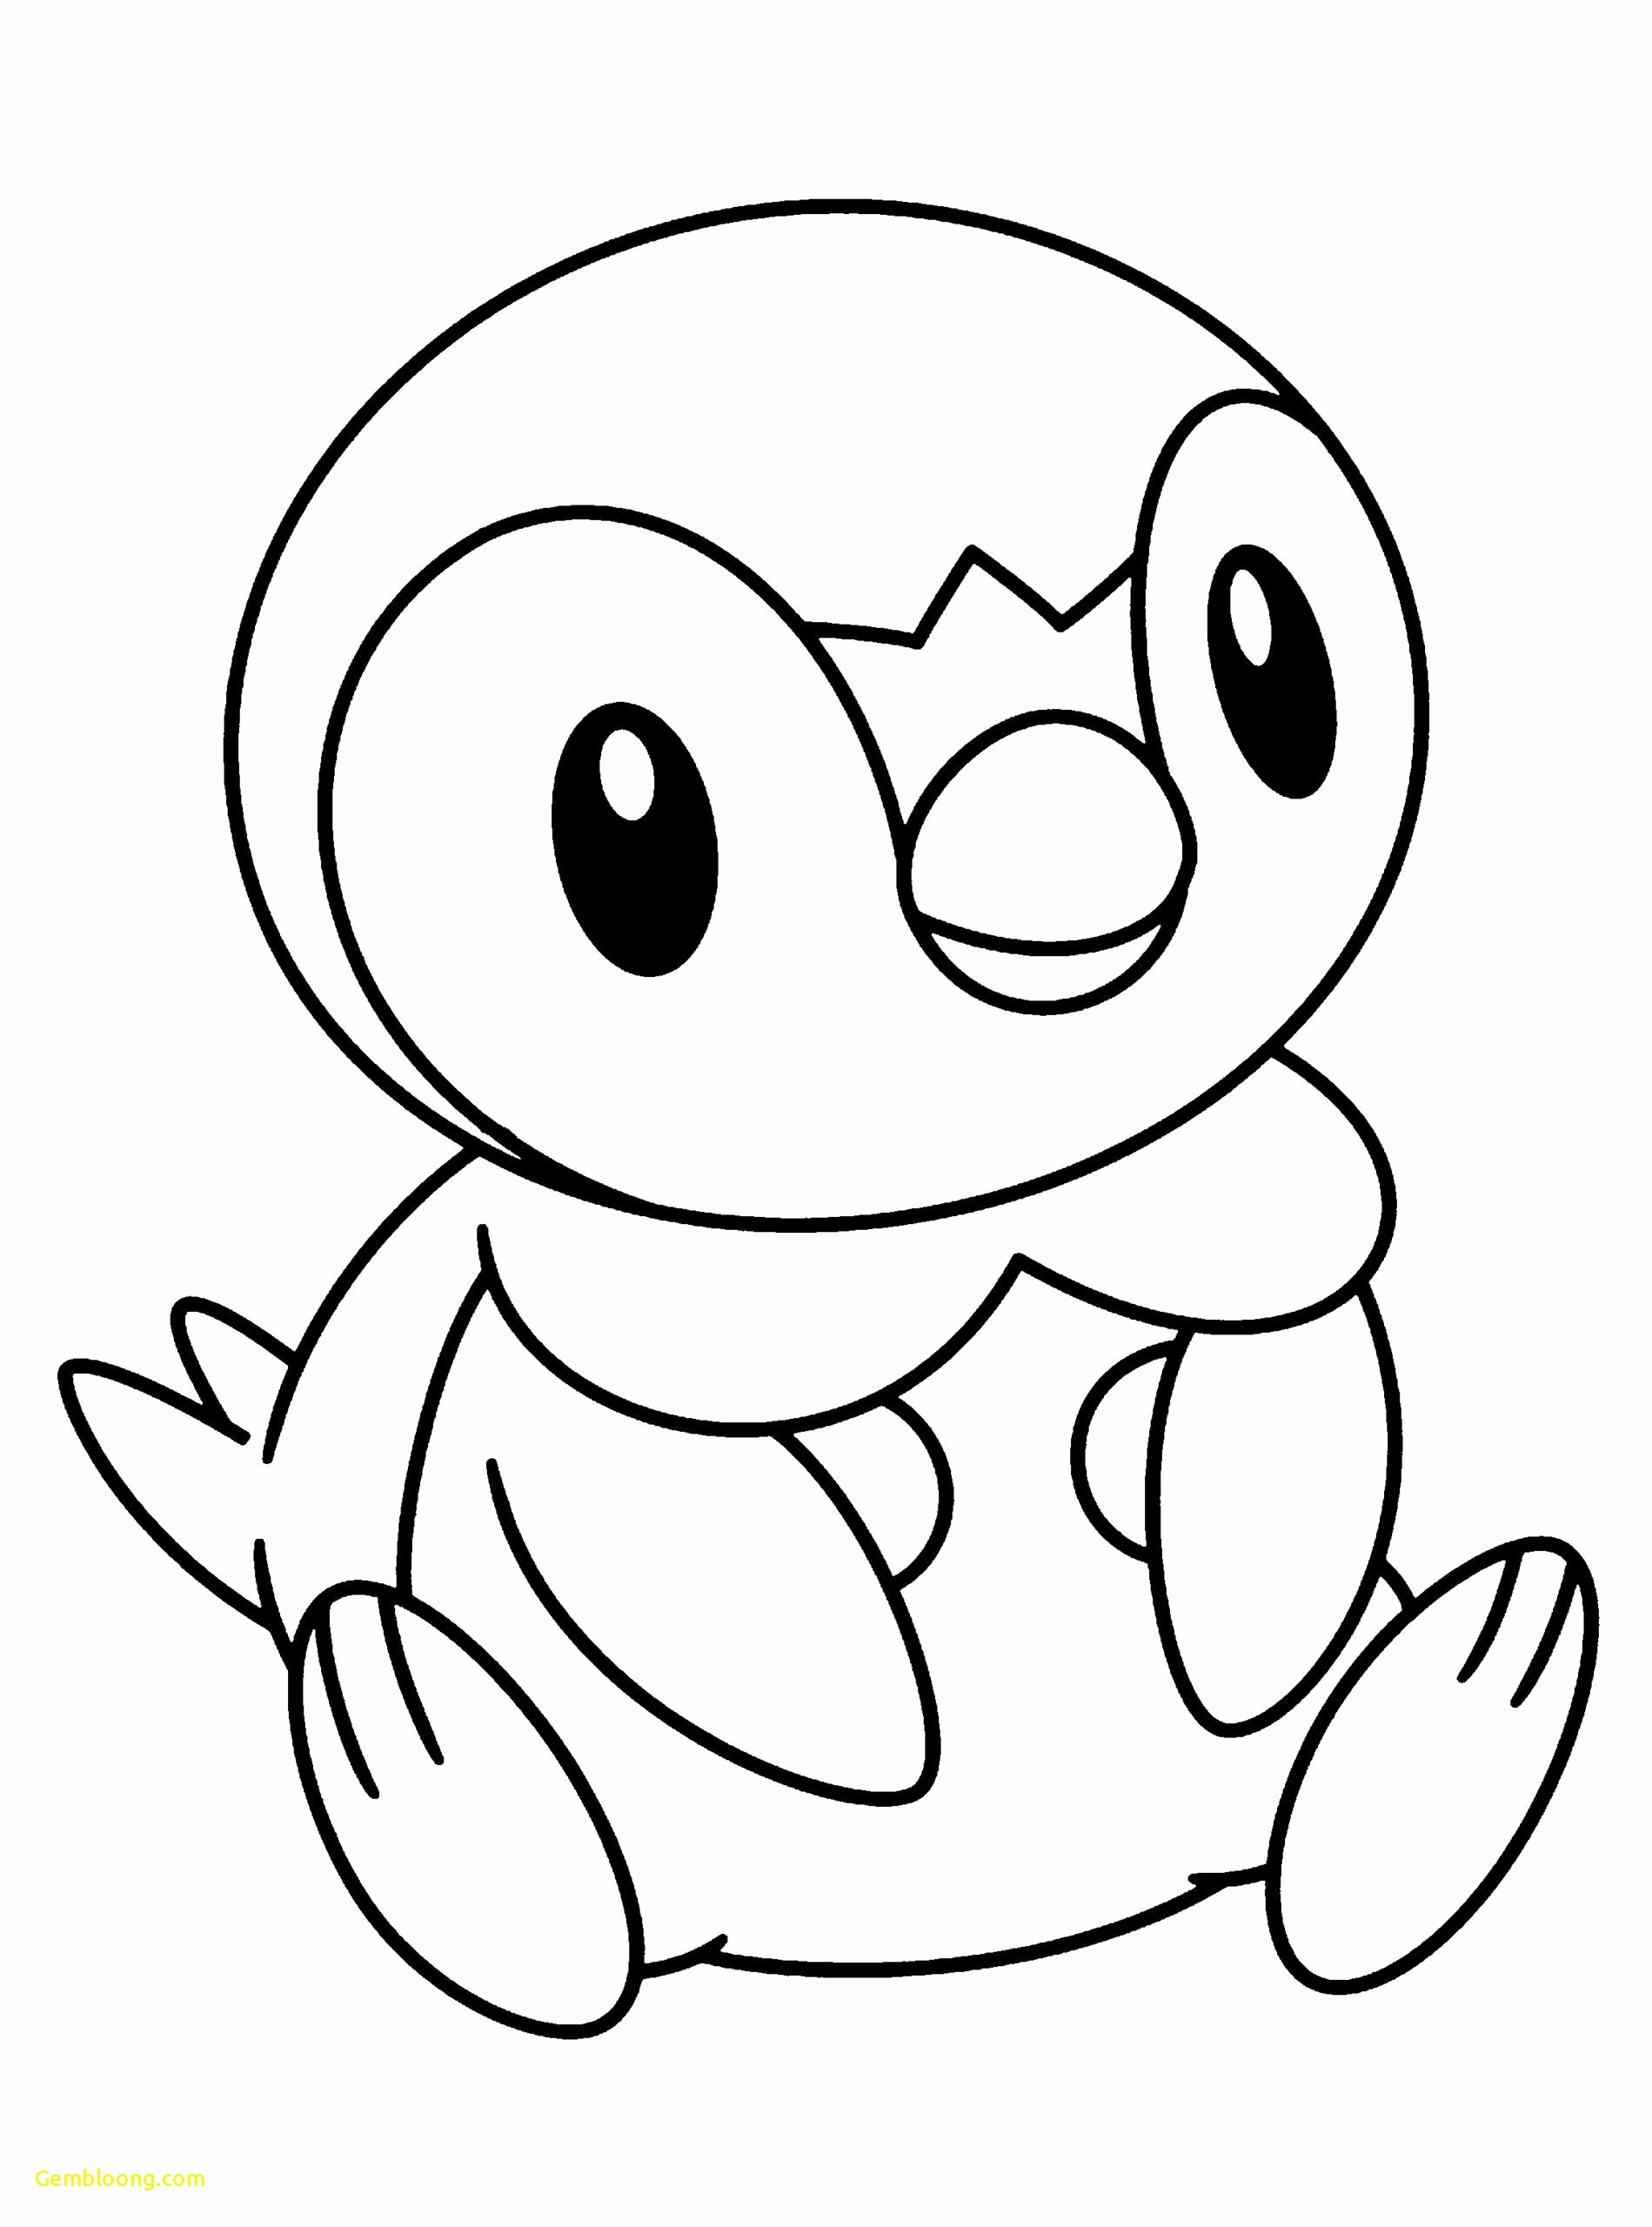 Diamond Coloring Page Awesome Coloring Pages Minecraft Sword Coloring Pages Pokemon Coloring Pages Pokemon Coloring Coloring Pages